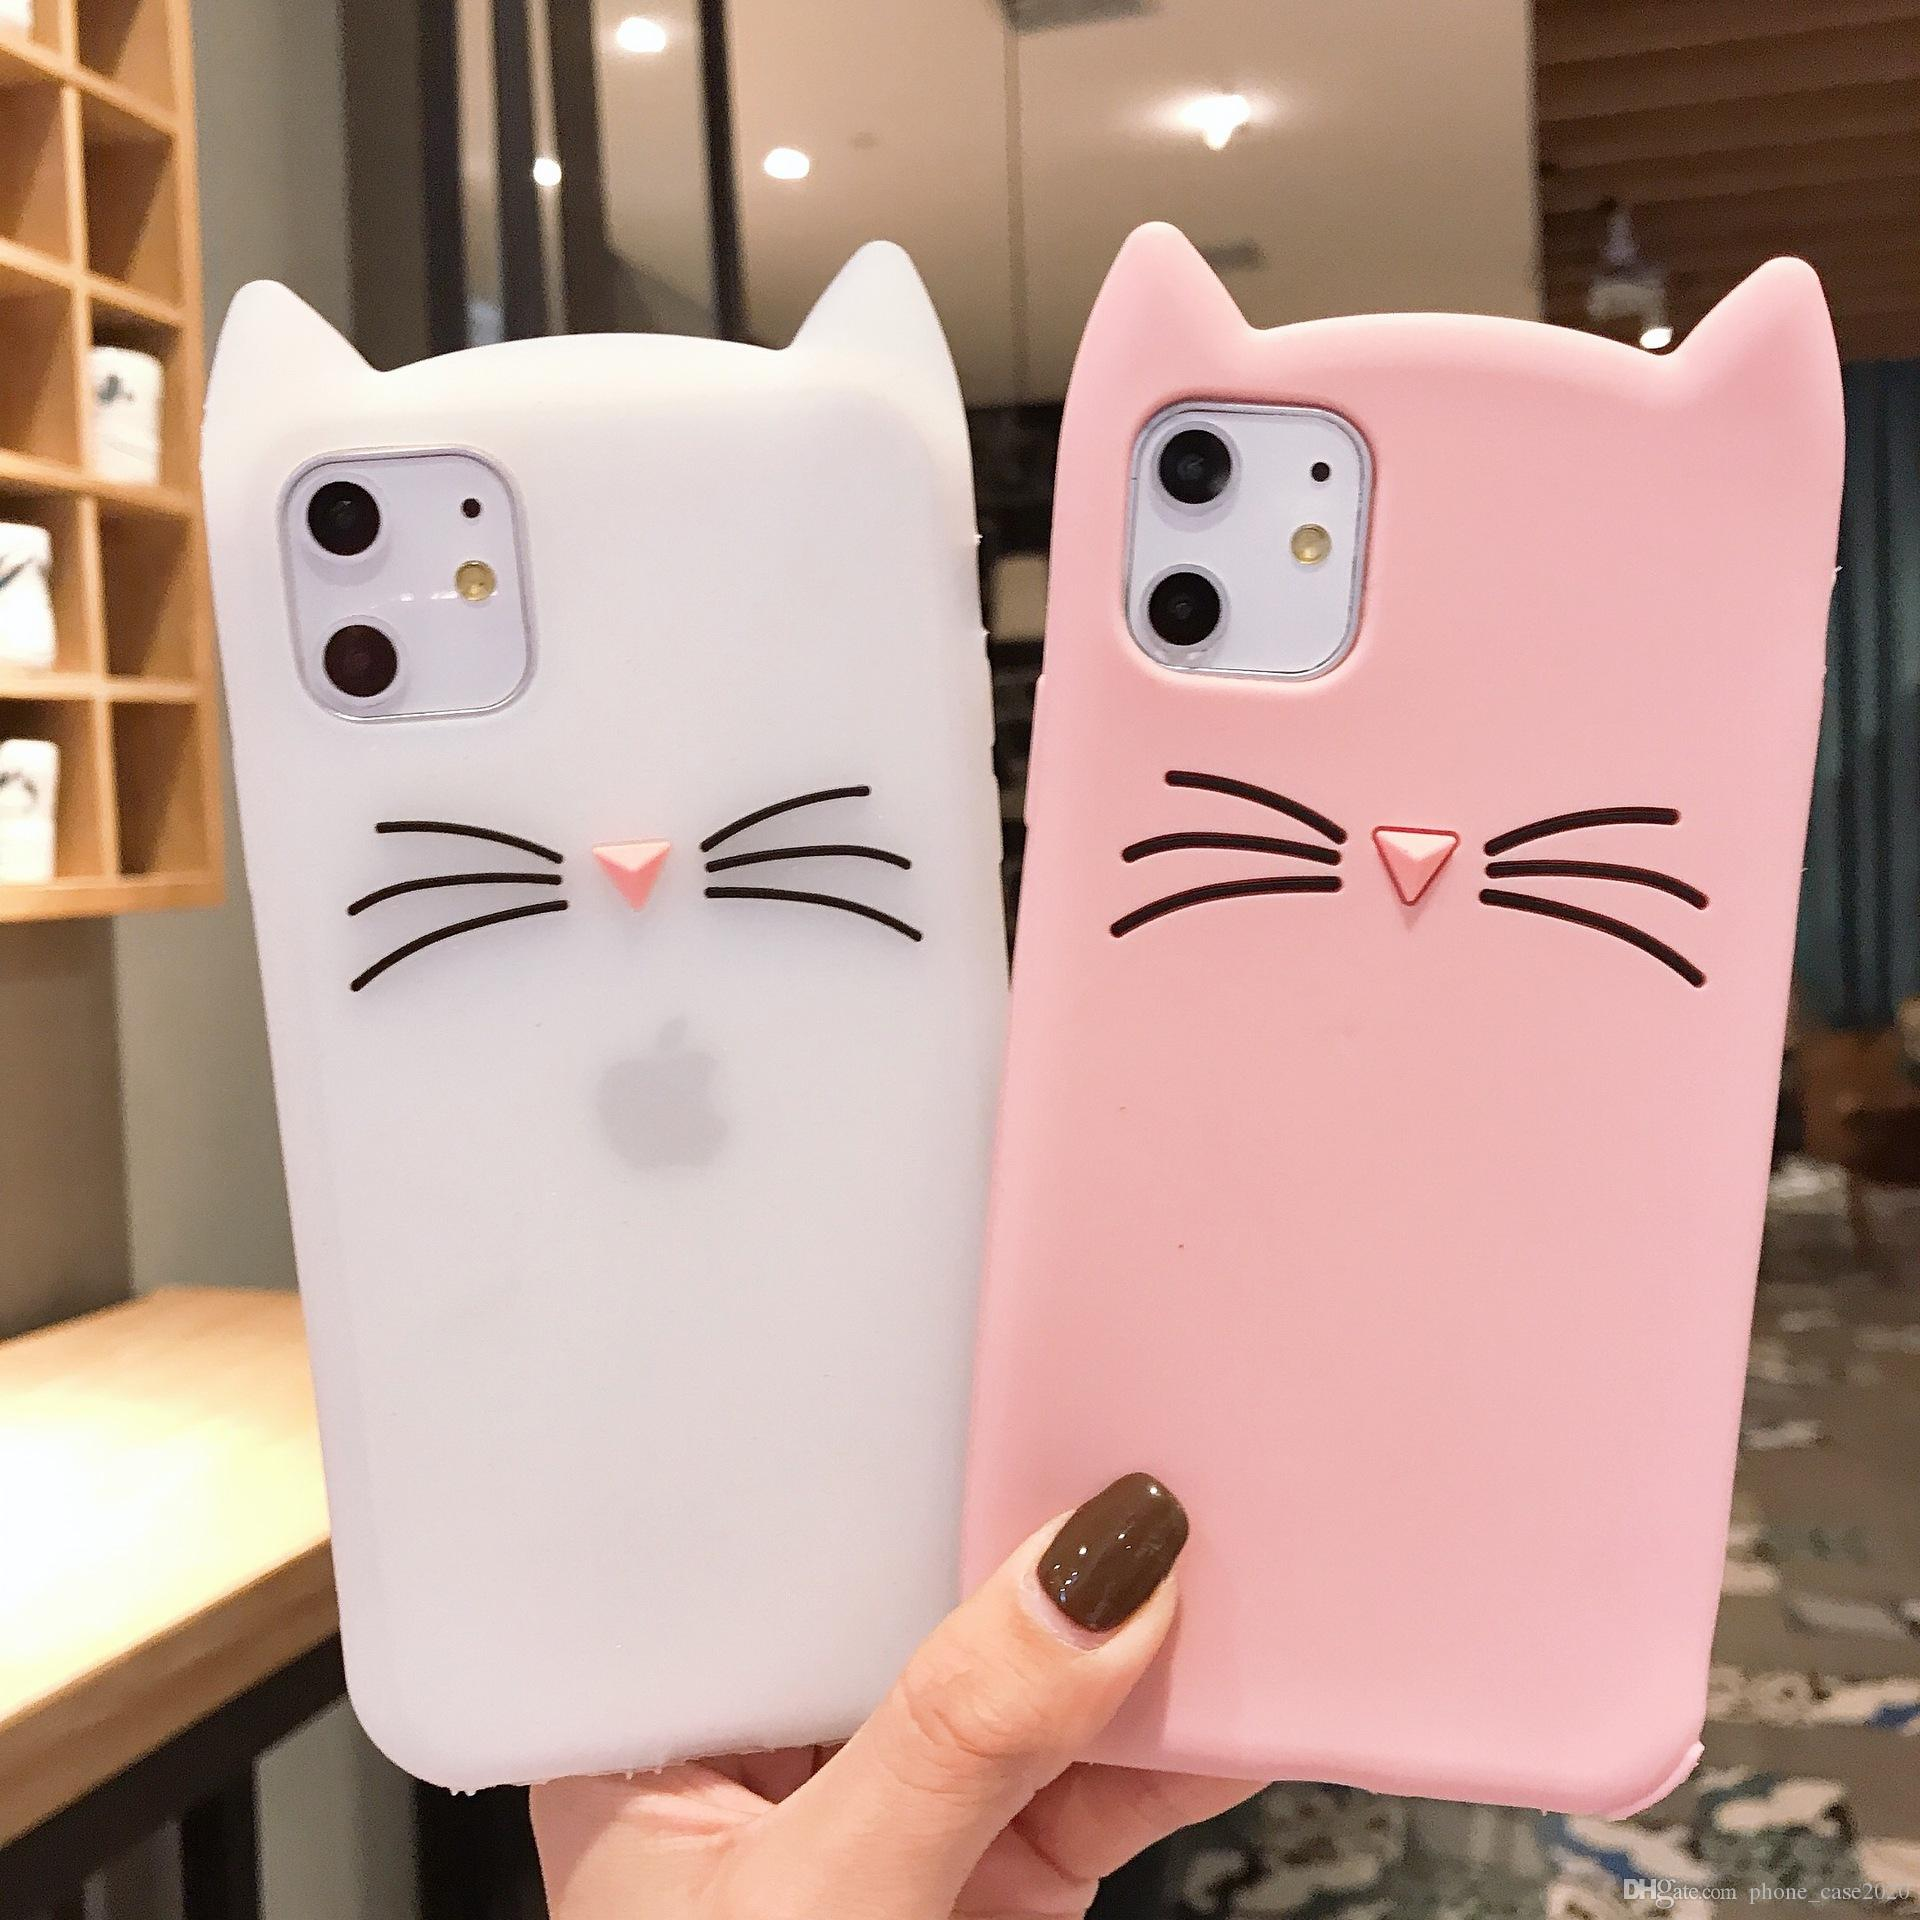 Cute Beard Cat Soft Silicone Case For IPhone 11 Pro Max XS Max XR XS X 8 7 6 S10 Plus S10E S9